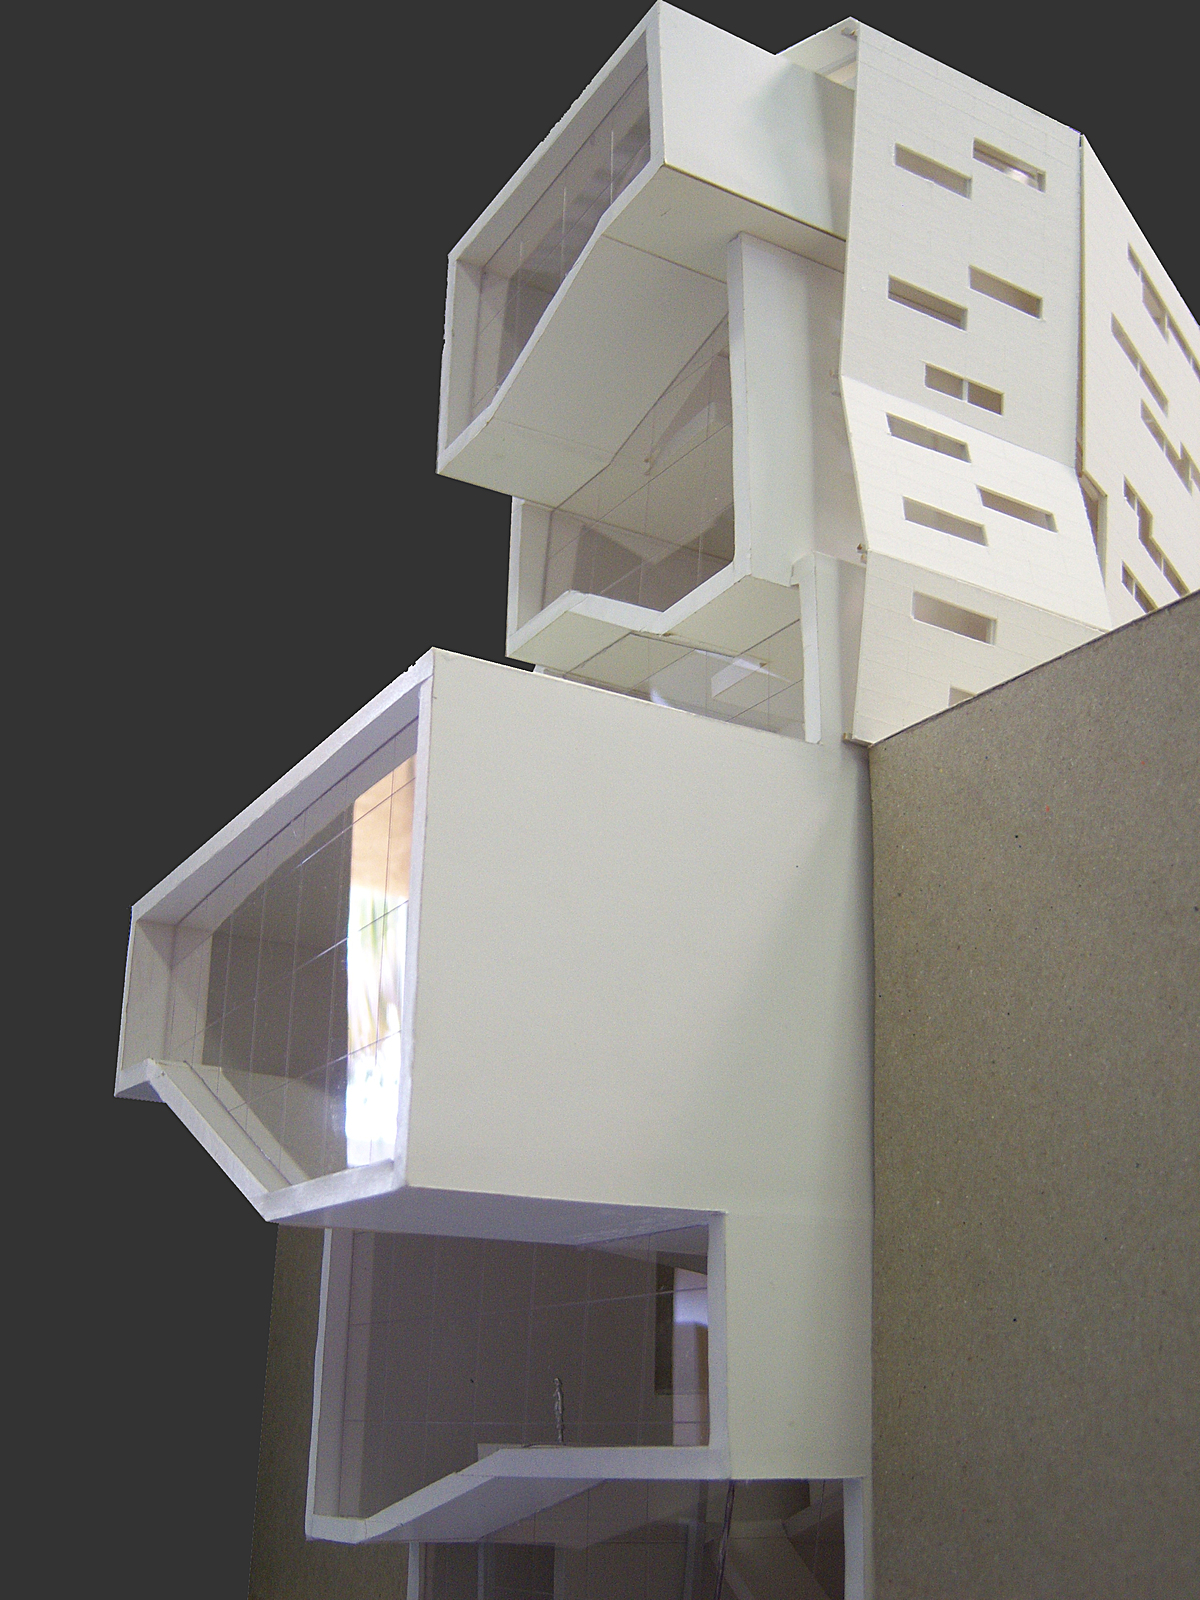 Model, 3rd Street South View